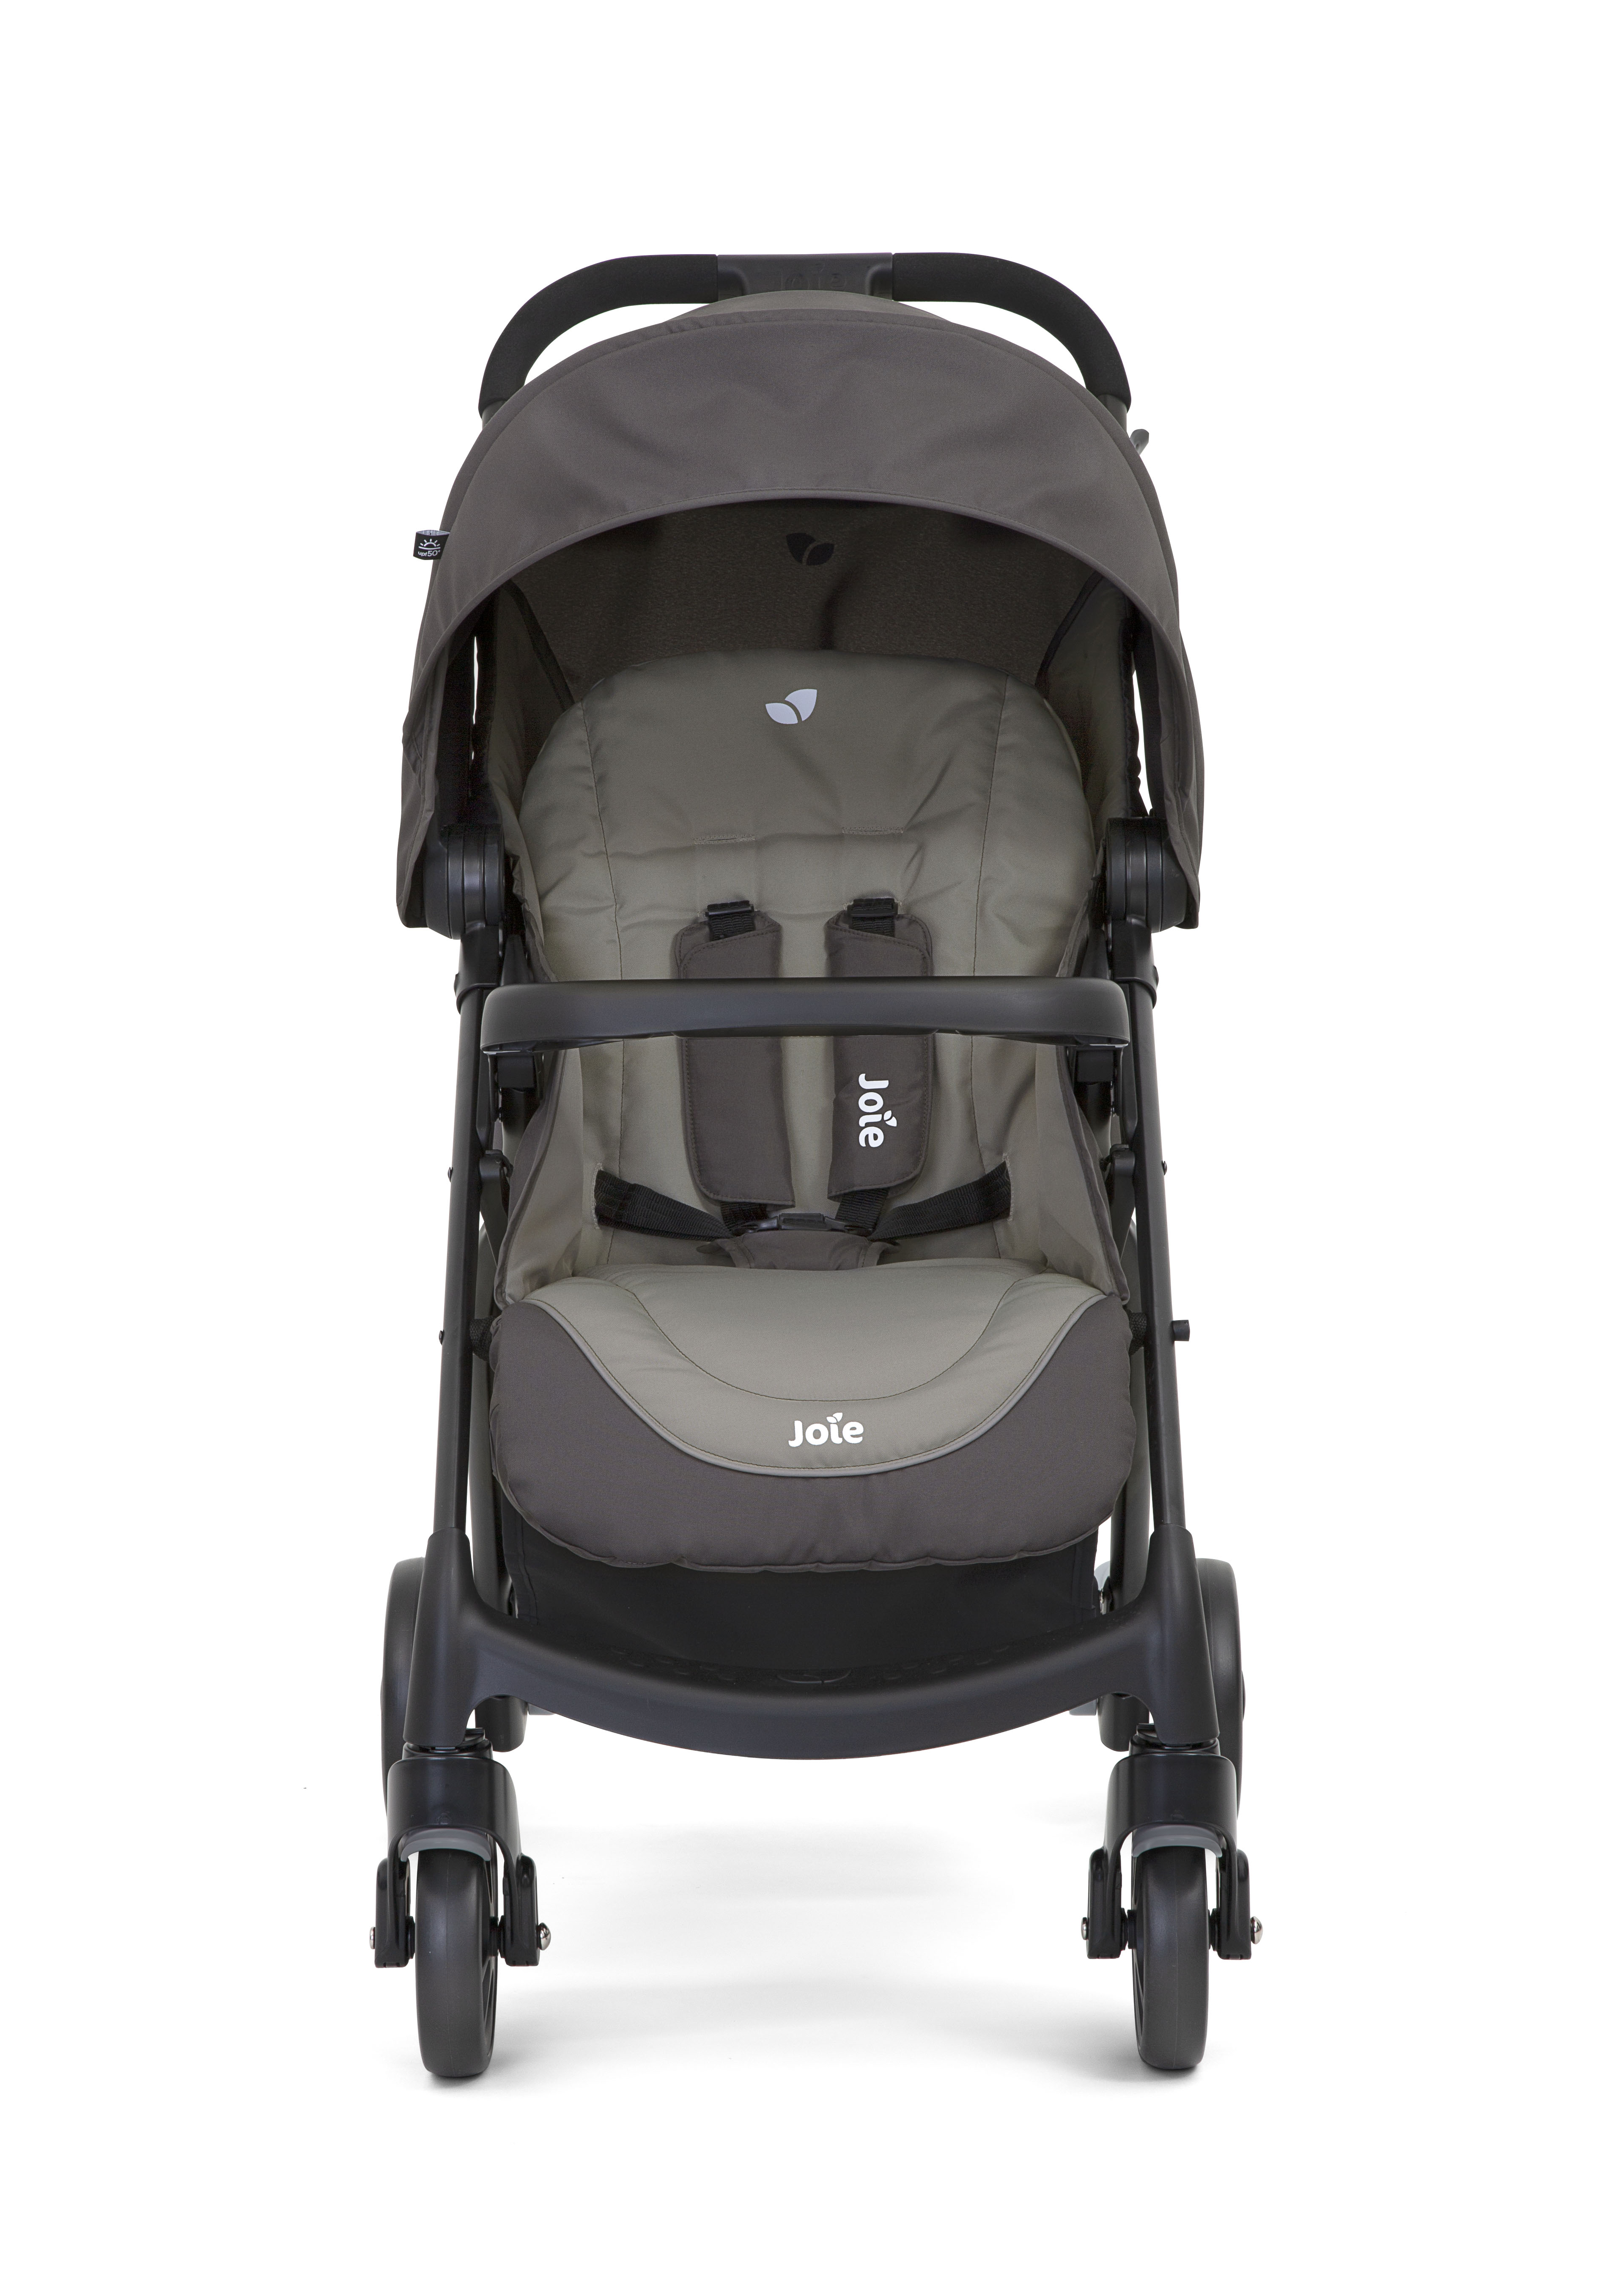 Mothercare   Joie Muze Lx Travel system W/ Juva Dark Pewter